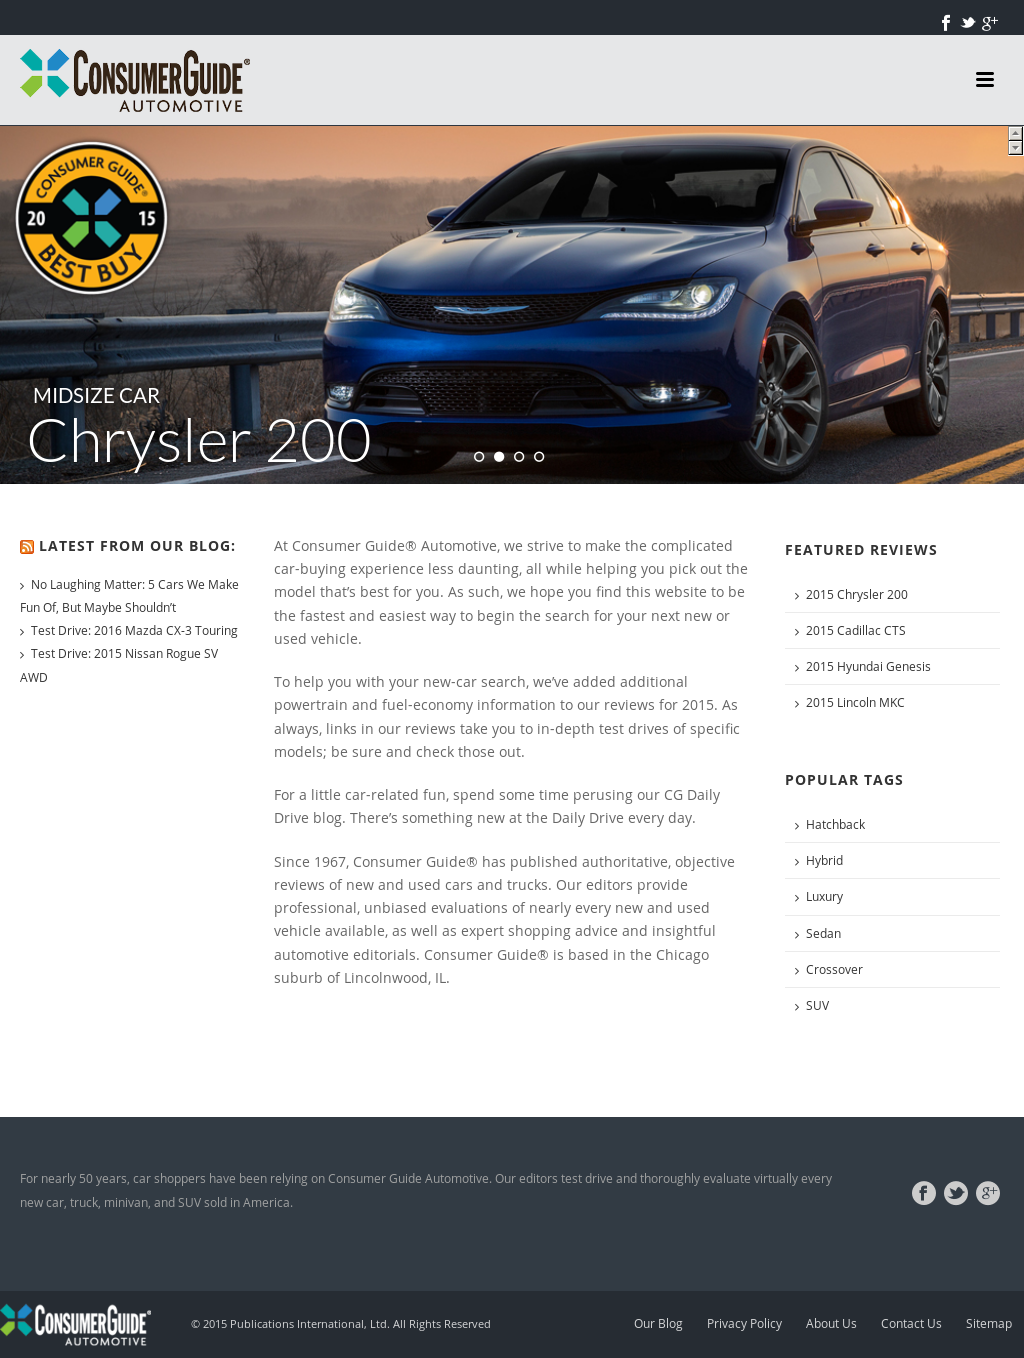 Consumer Guide Automotive Competitors, Revenue and Employees - Owler  Company Profile